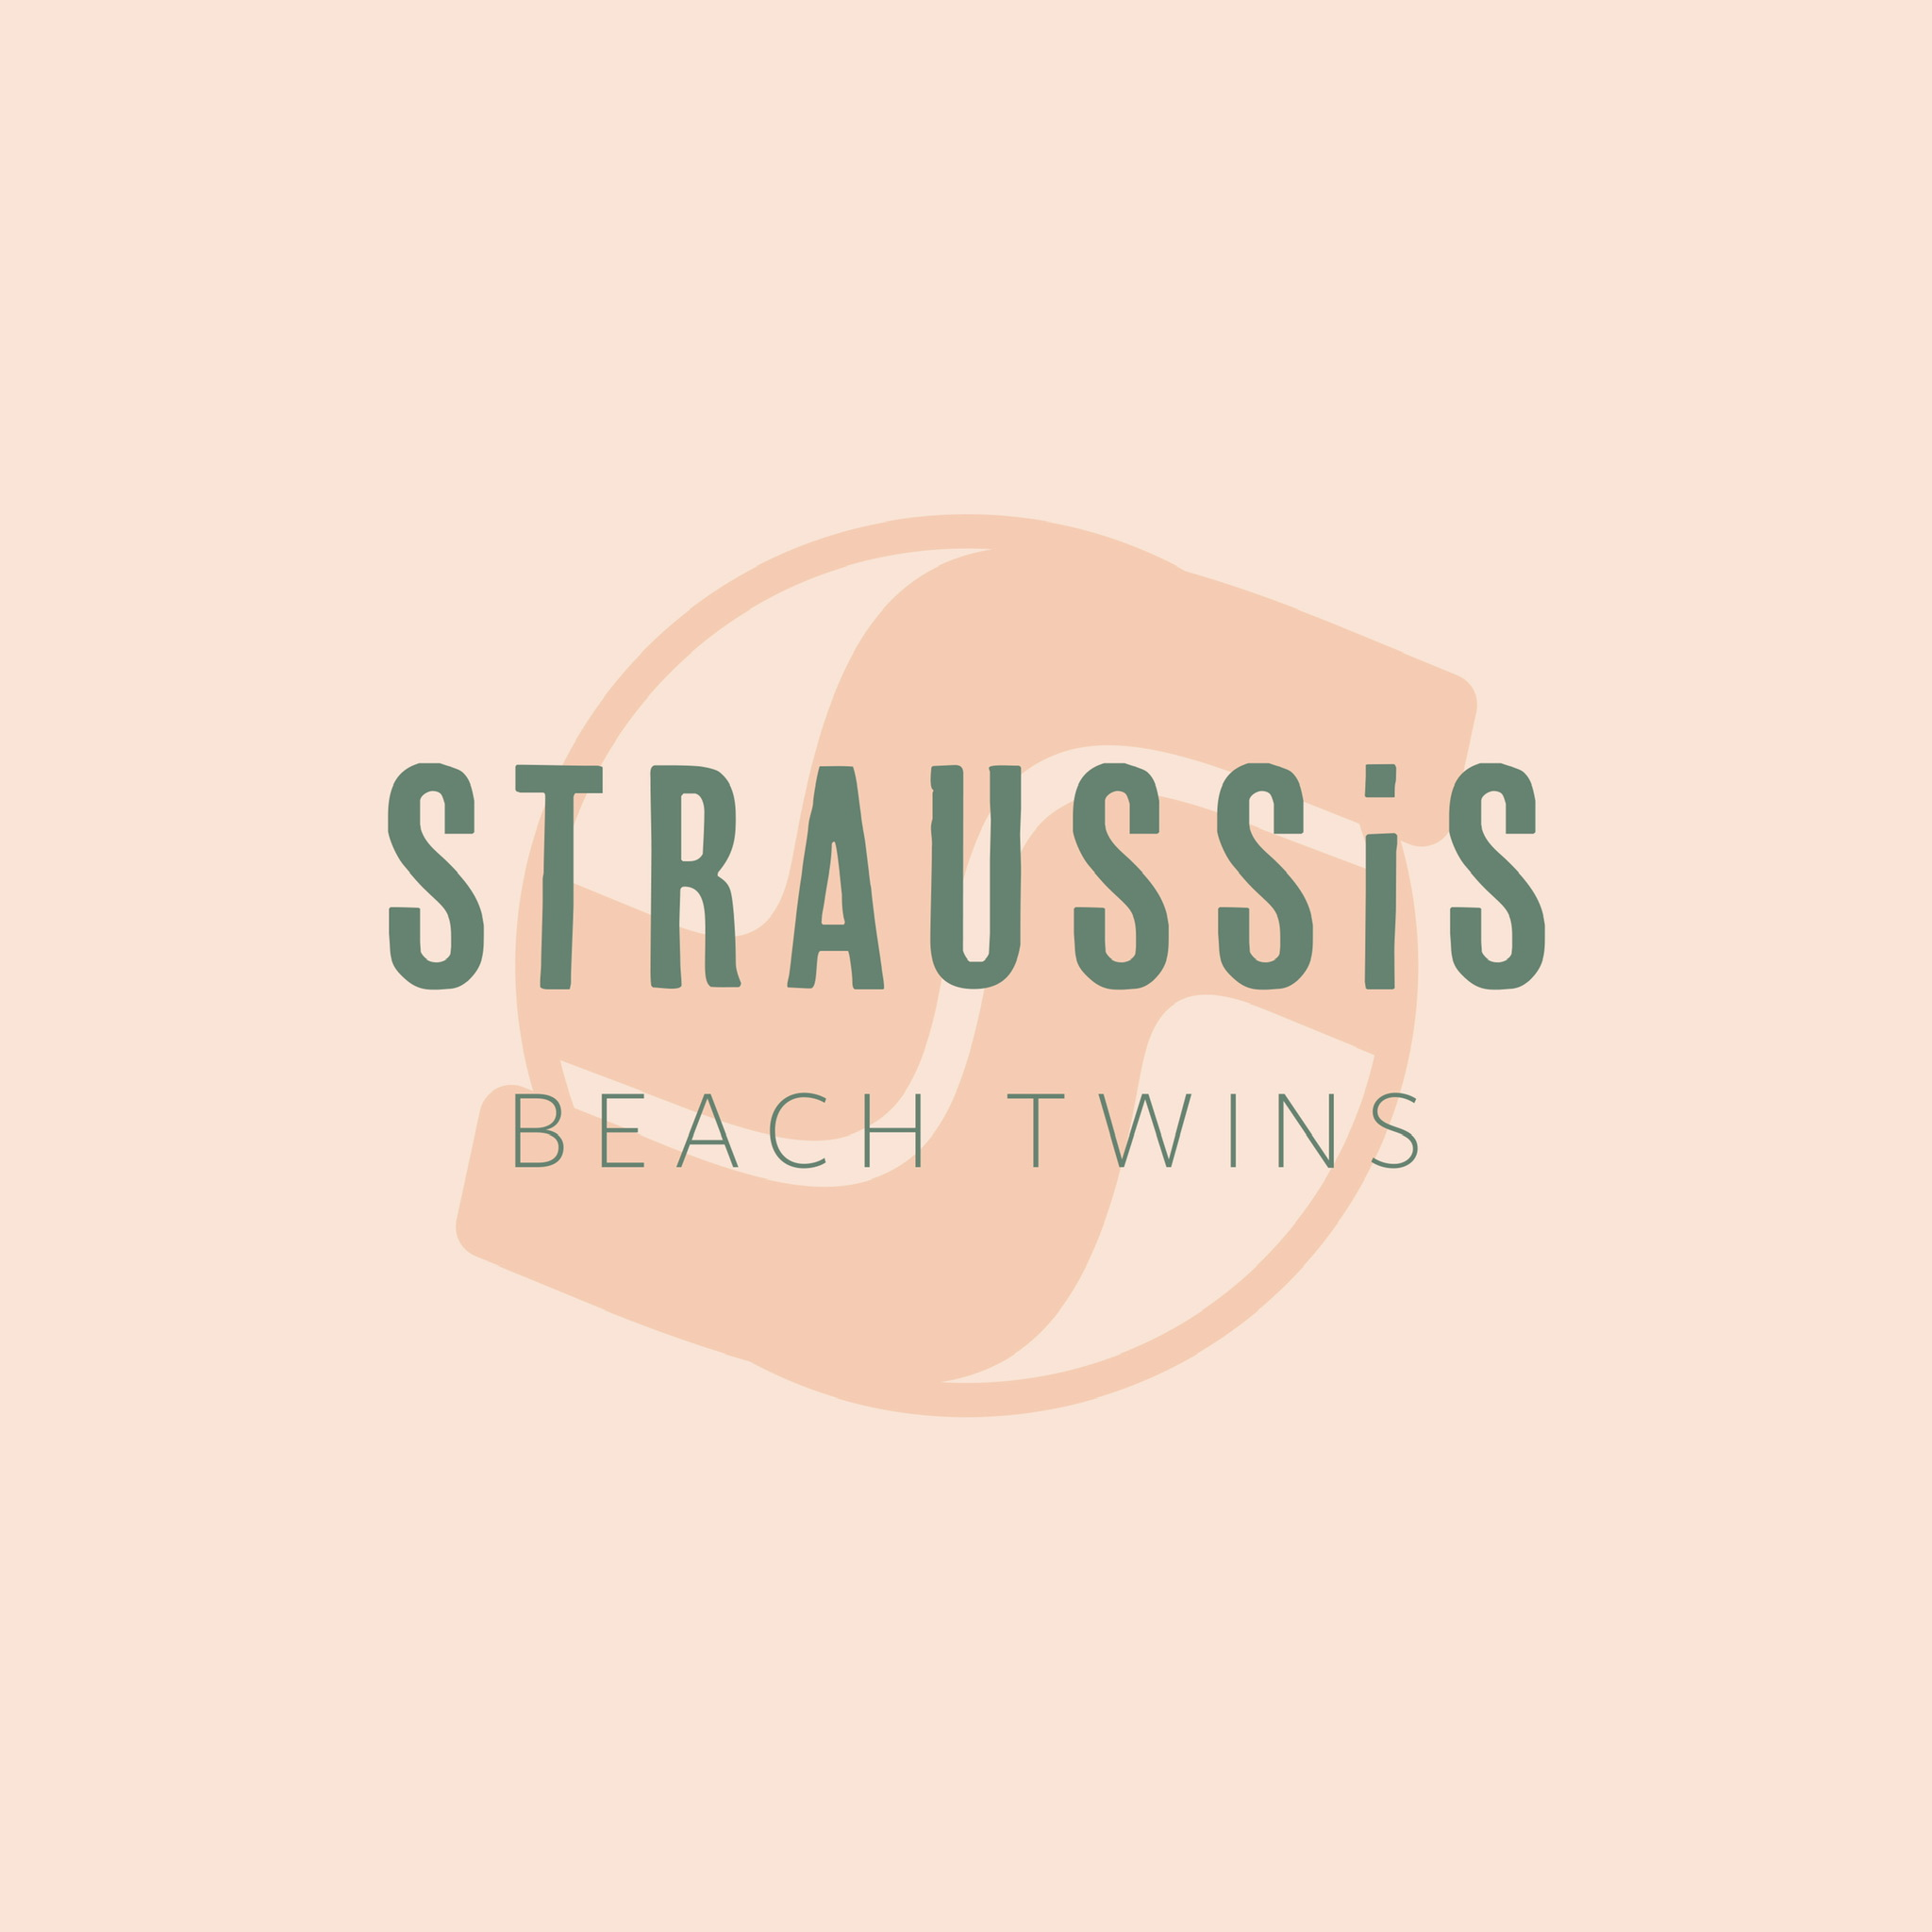 Straussis Beach Twins Logodesign Spotone